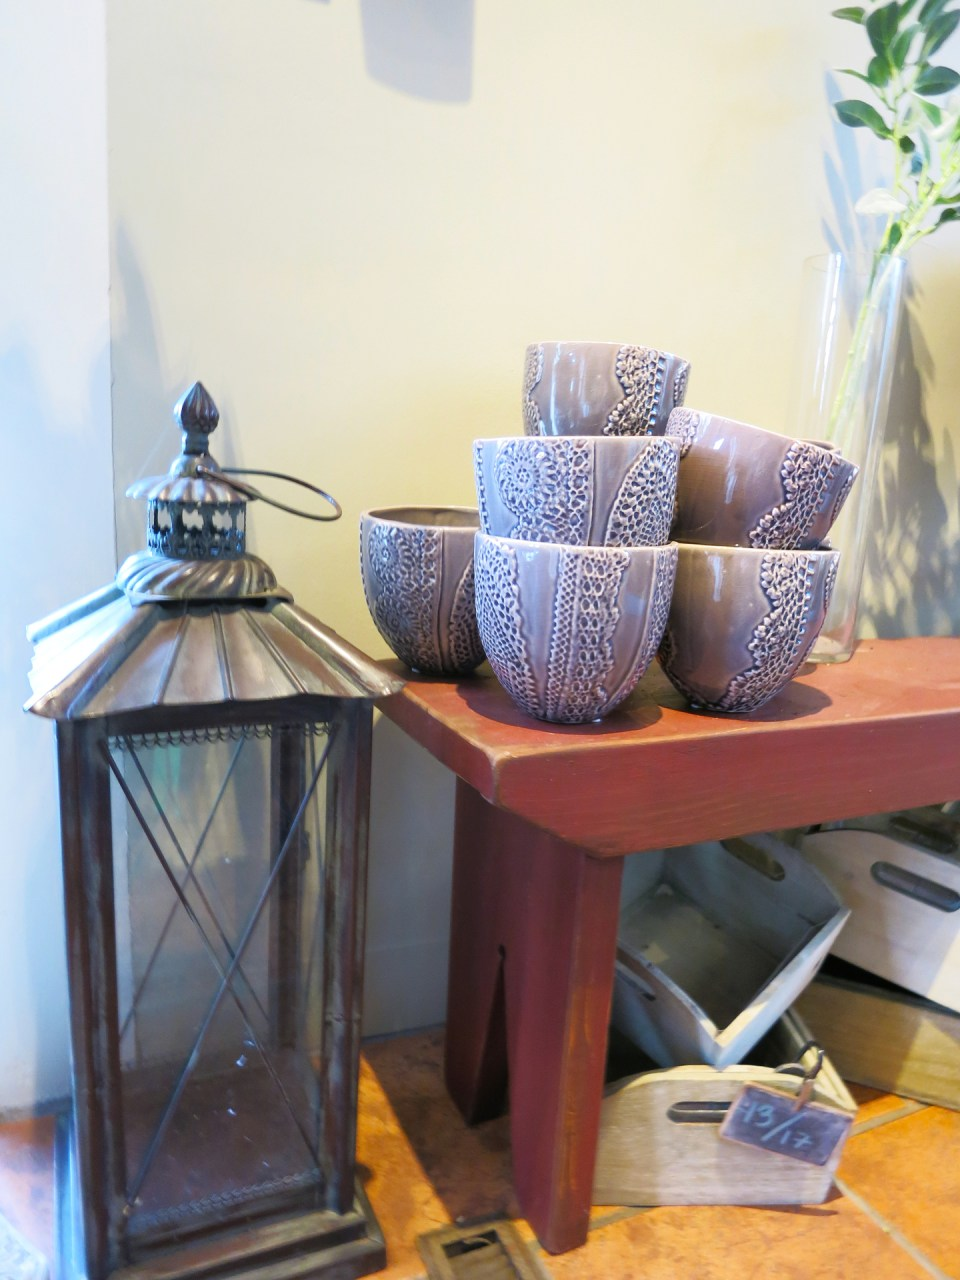 Purple bowls on a red bench and a metal lantern on display in Studio 539 located on Wickenden Street in Providence, RI